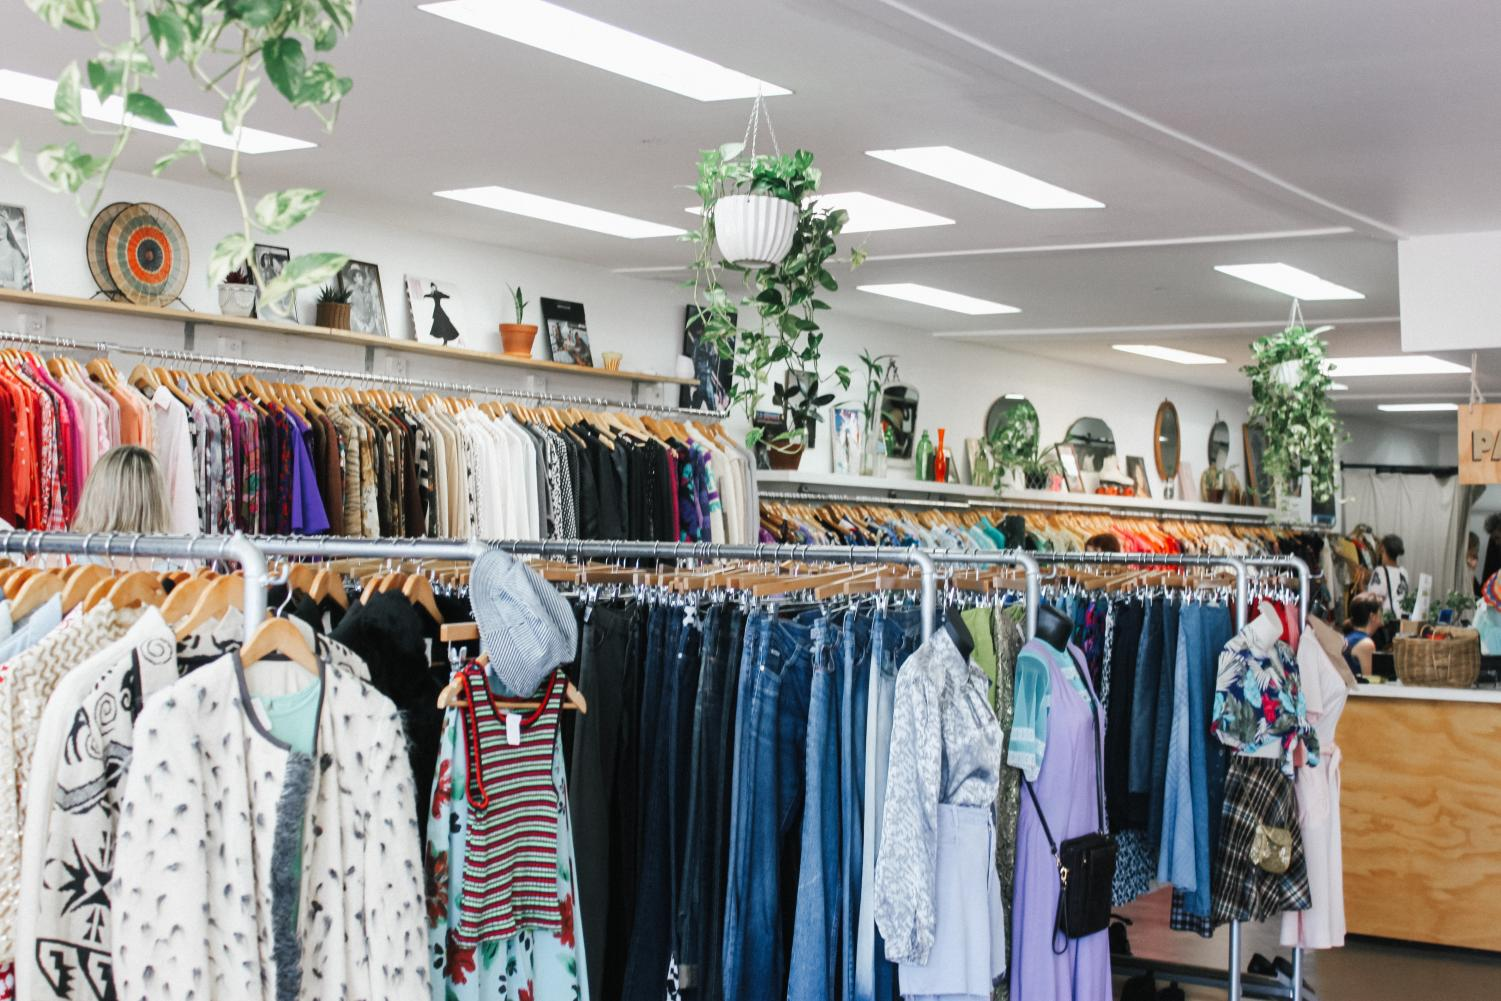 Shopping second hand is a great affordable option to buy clothing. Not only is it cost effective but it is also environmentally friendly.